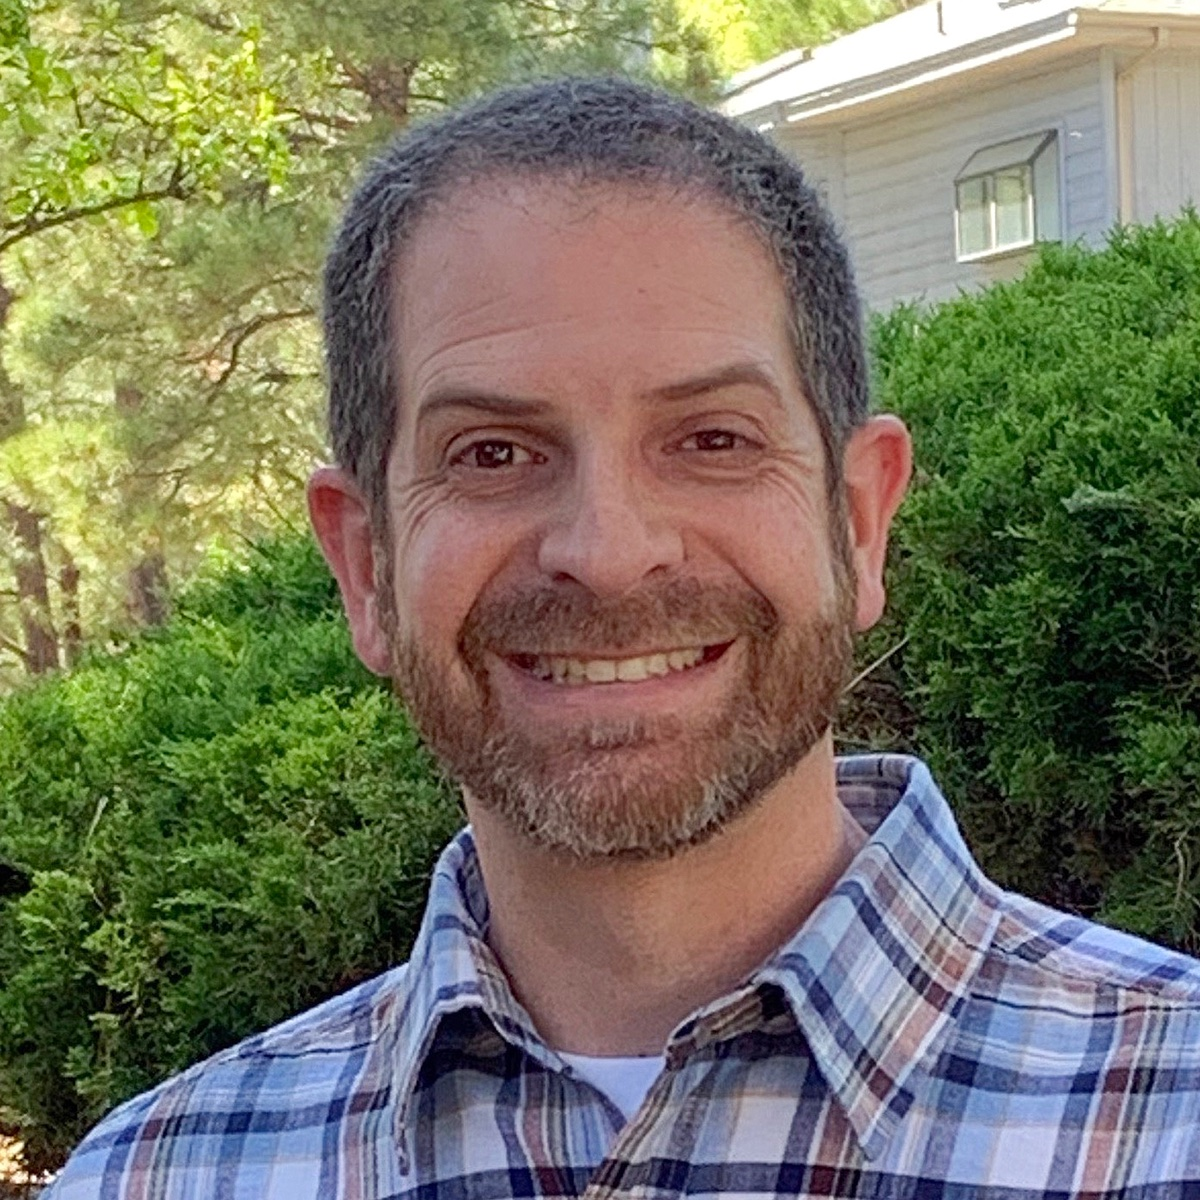 CCC Spotlight: @CoconinoCC Biology faculty Doug Friedman is selected the 2020-21 Full-Time Faculty of the Year. #CCCStellar #communitycollege #CCCWorking4You #students https://t.co/qZeKFRpegZ https://t.co/0szs8ifIUR